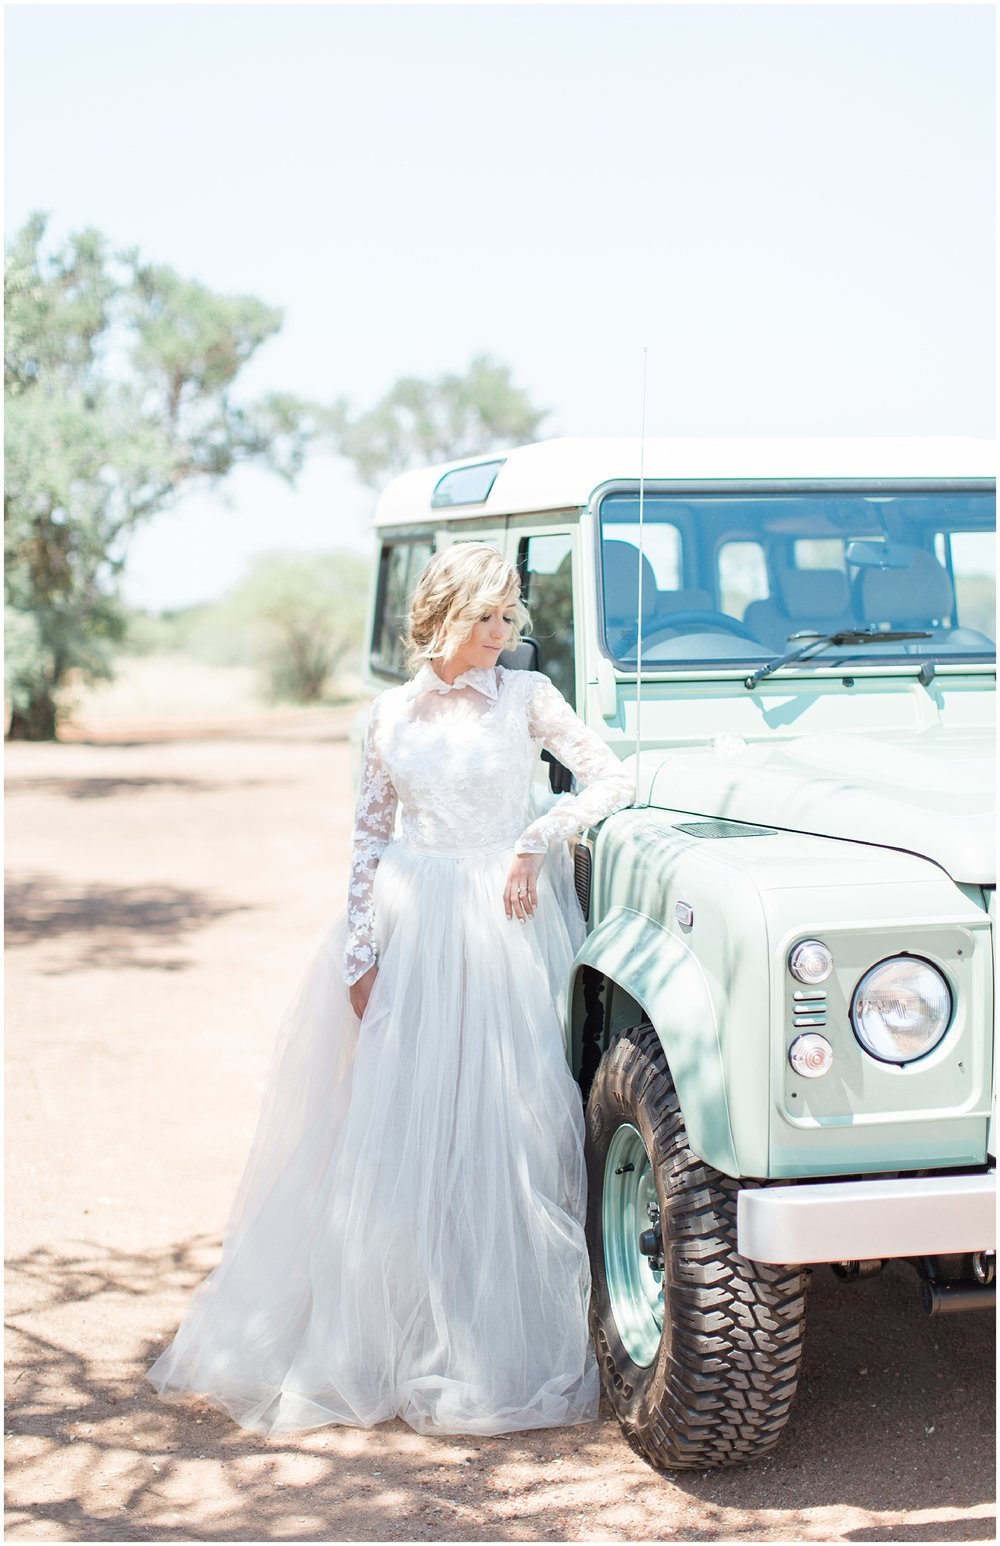 AliciaLandman_JoleneandZander_Wedding_The Pretty Blog_0445.jpg